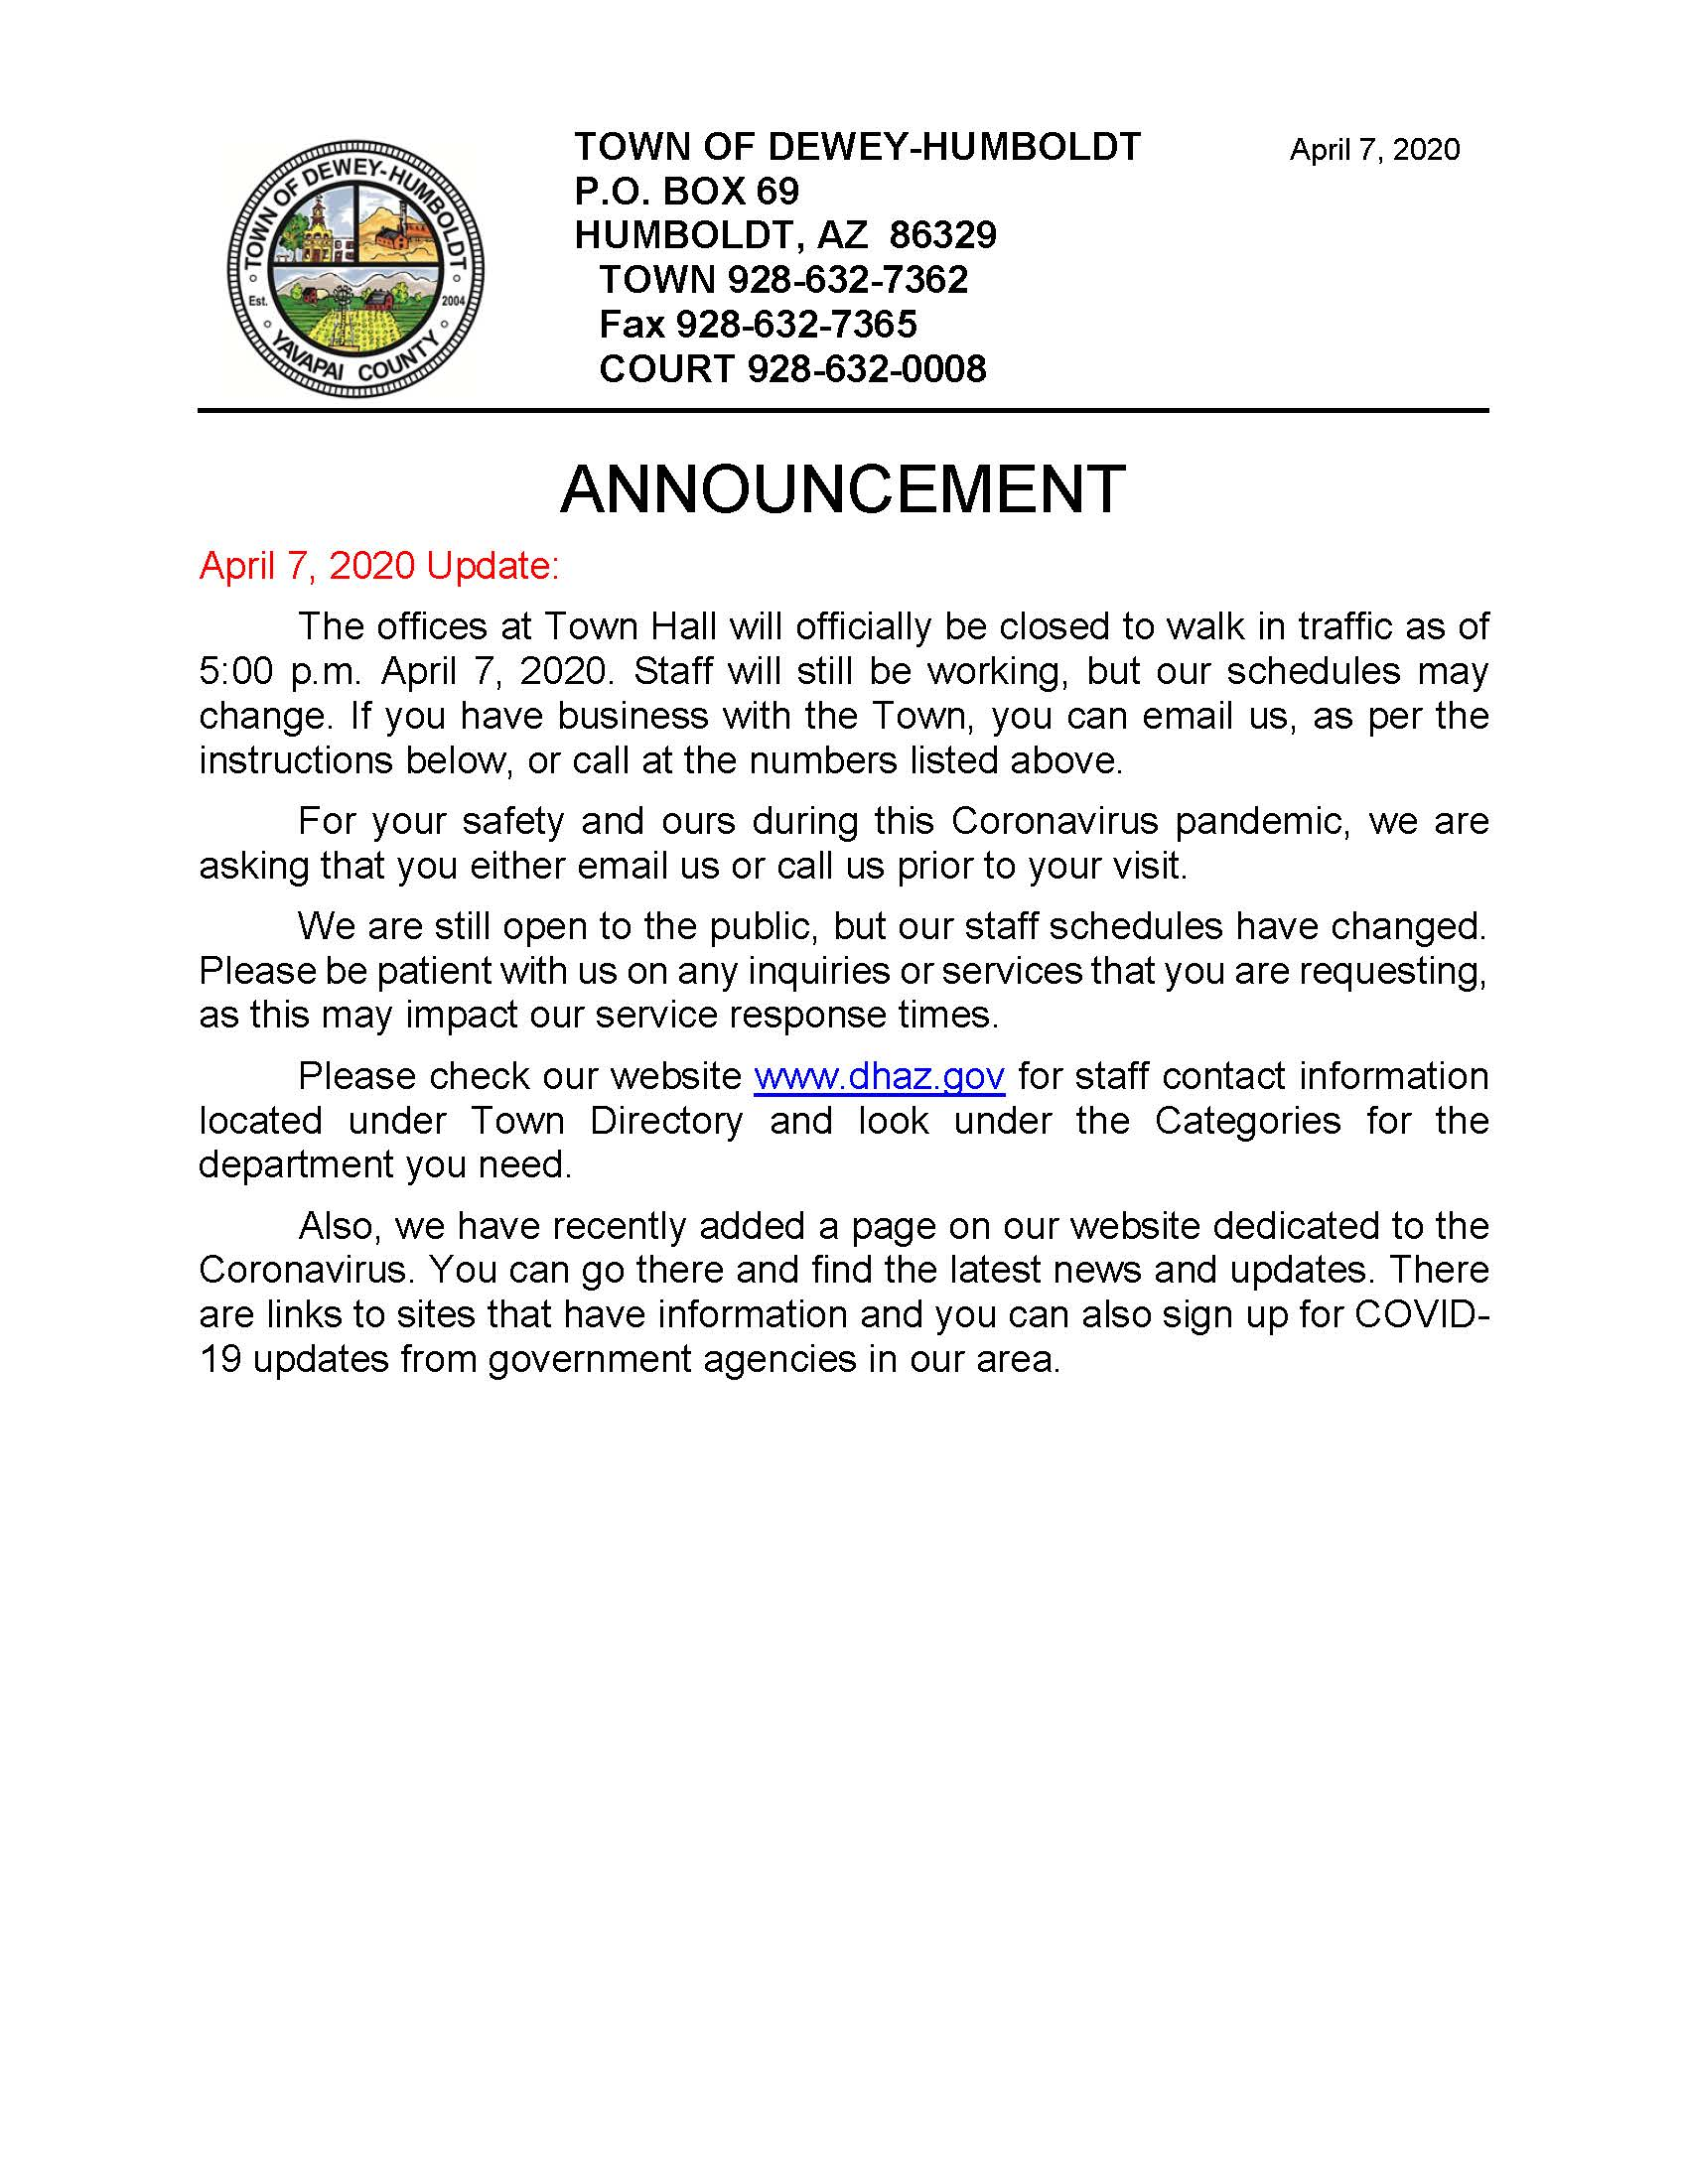 Coronavirus Announcement